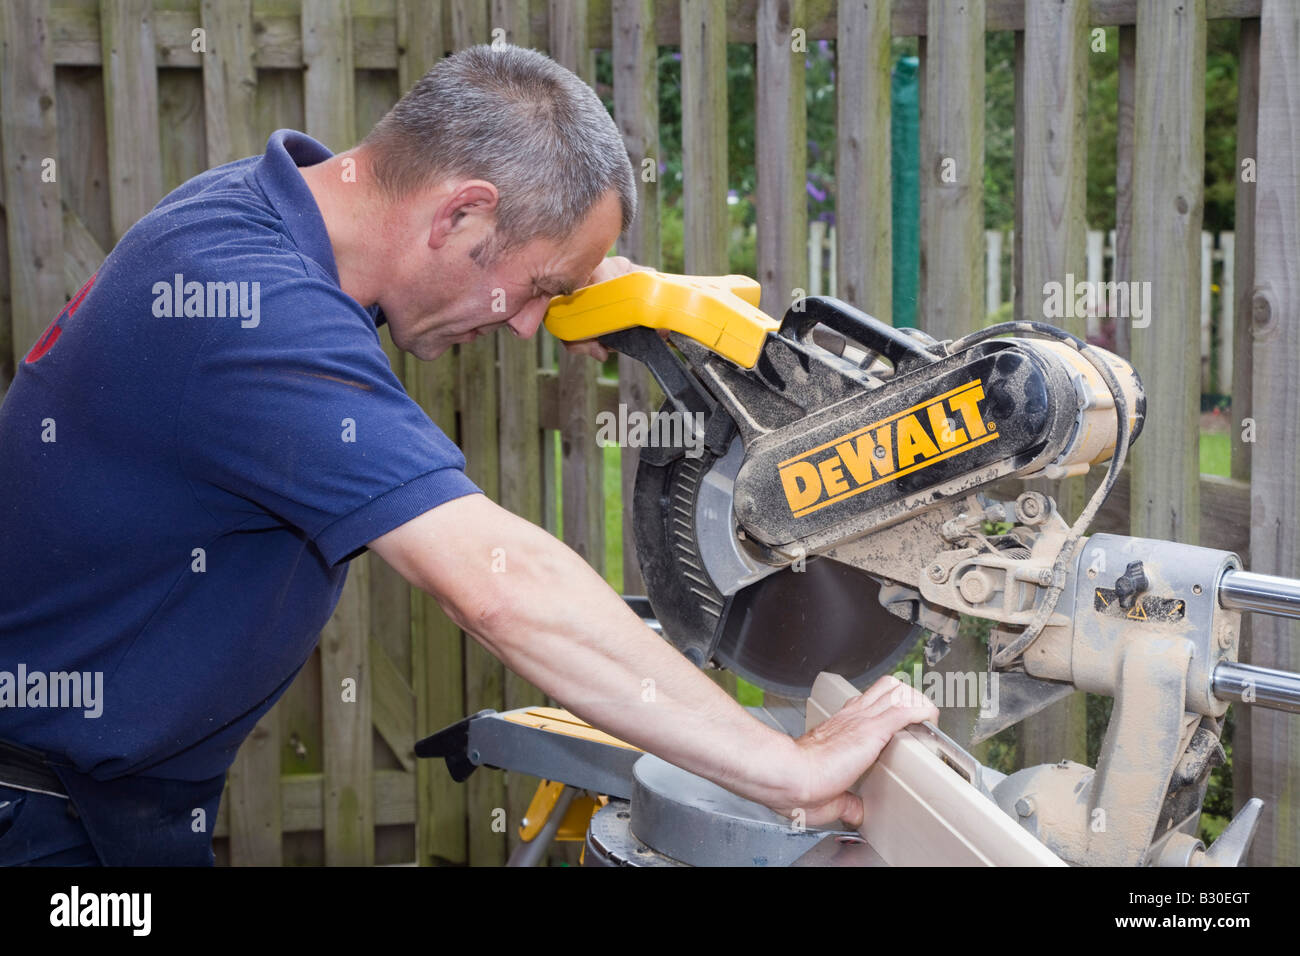 Man using a De Walt circular saw power tool to cut a piece of wood outside. UK Britain - Stock Image